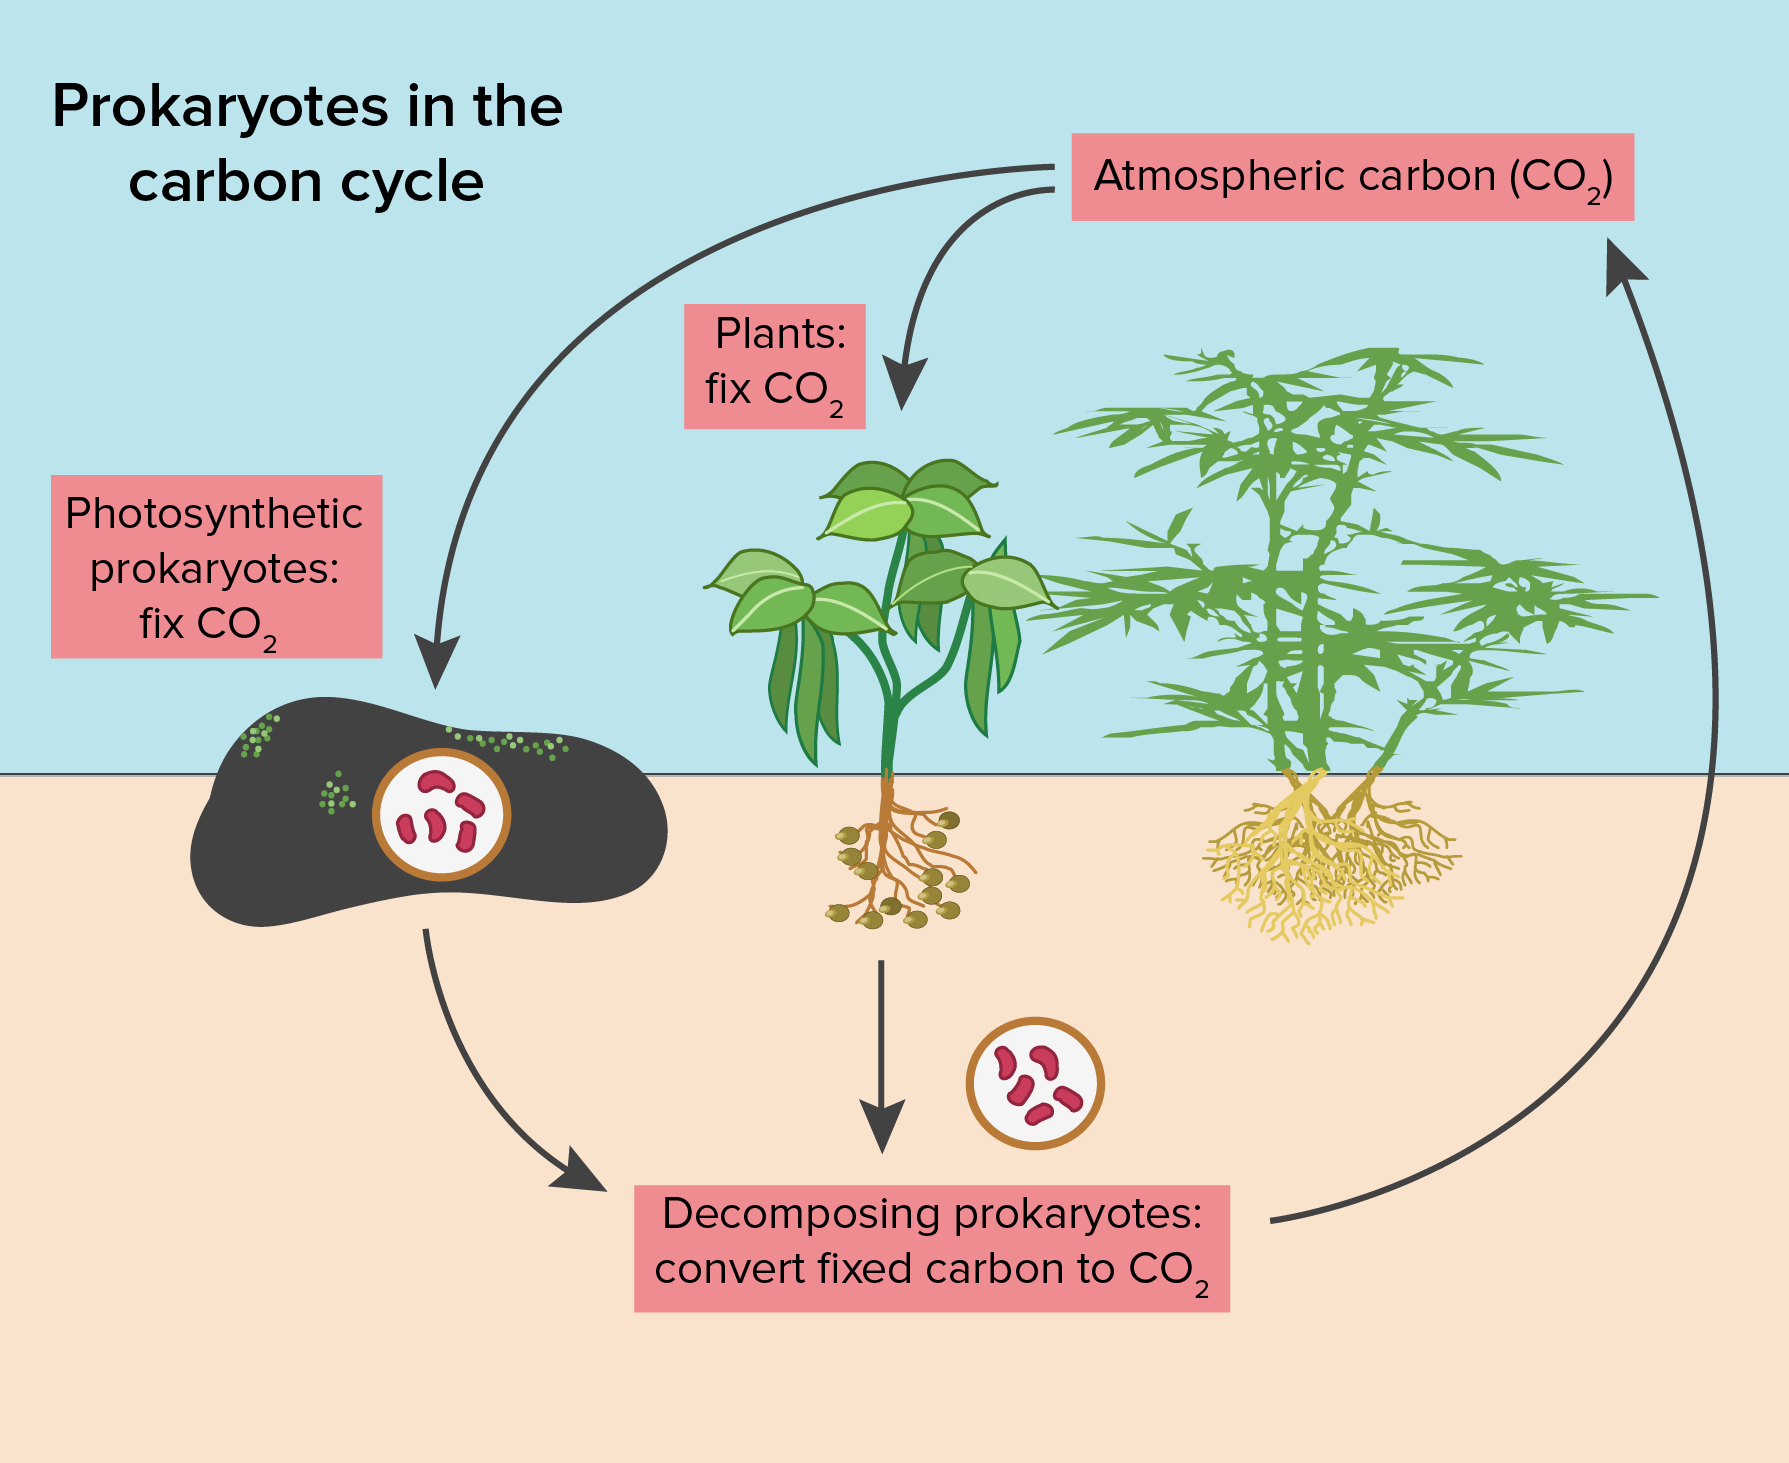 Prokaryote metabolism article khan academy play several roles in the carbon cycle decomposing prokaryotes break down dead organic matter and release carbon dioxide through cellular respiration ccuart Image collections